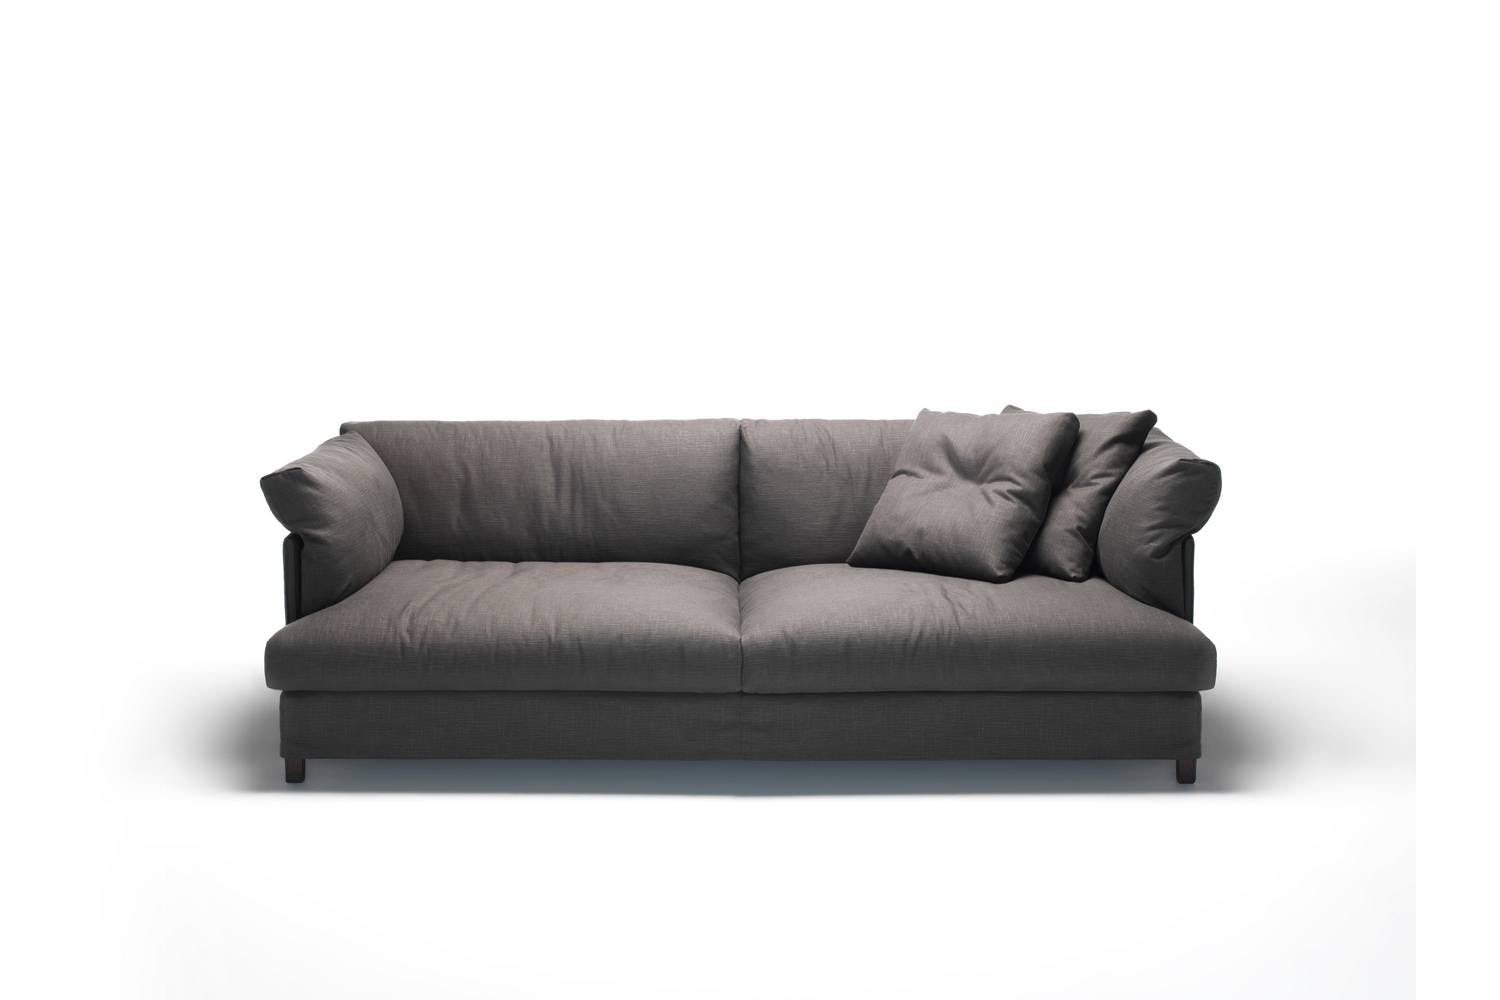 chemise xl sofa by piero lissoni for living divani space furniture. Black Bedroom Furniture Sets. Home Design Ideas